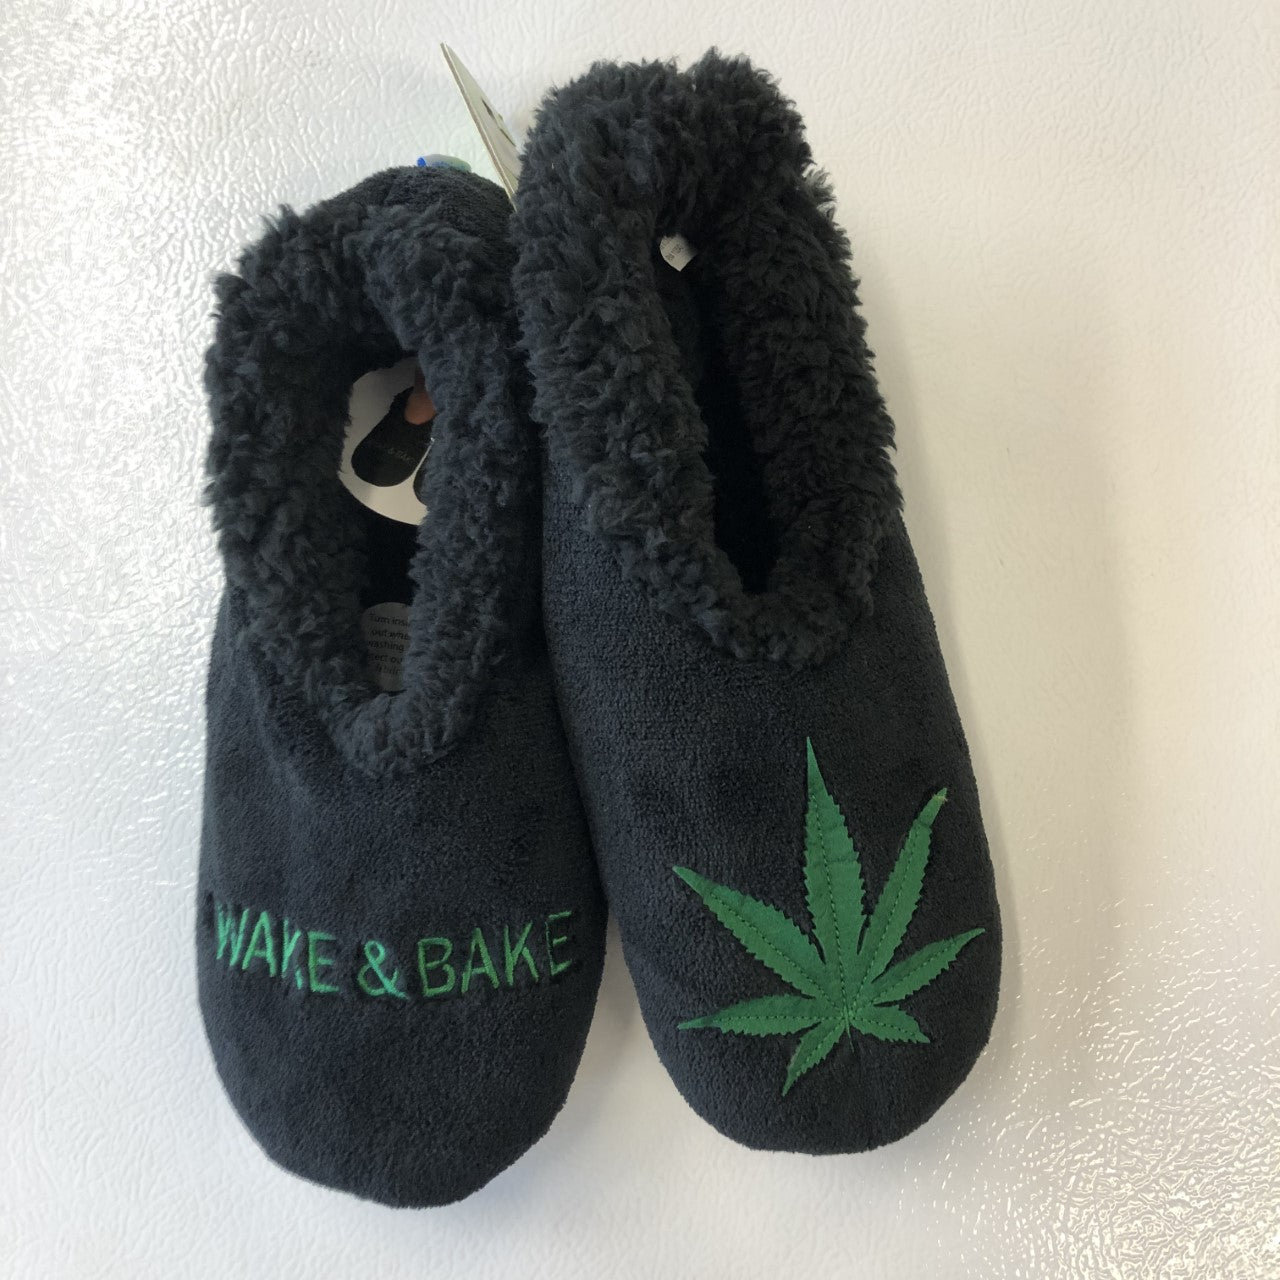 snoozies! Wake & Bake Slippers